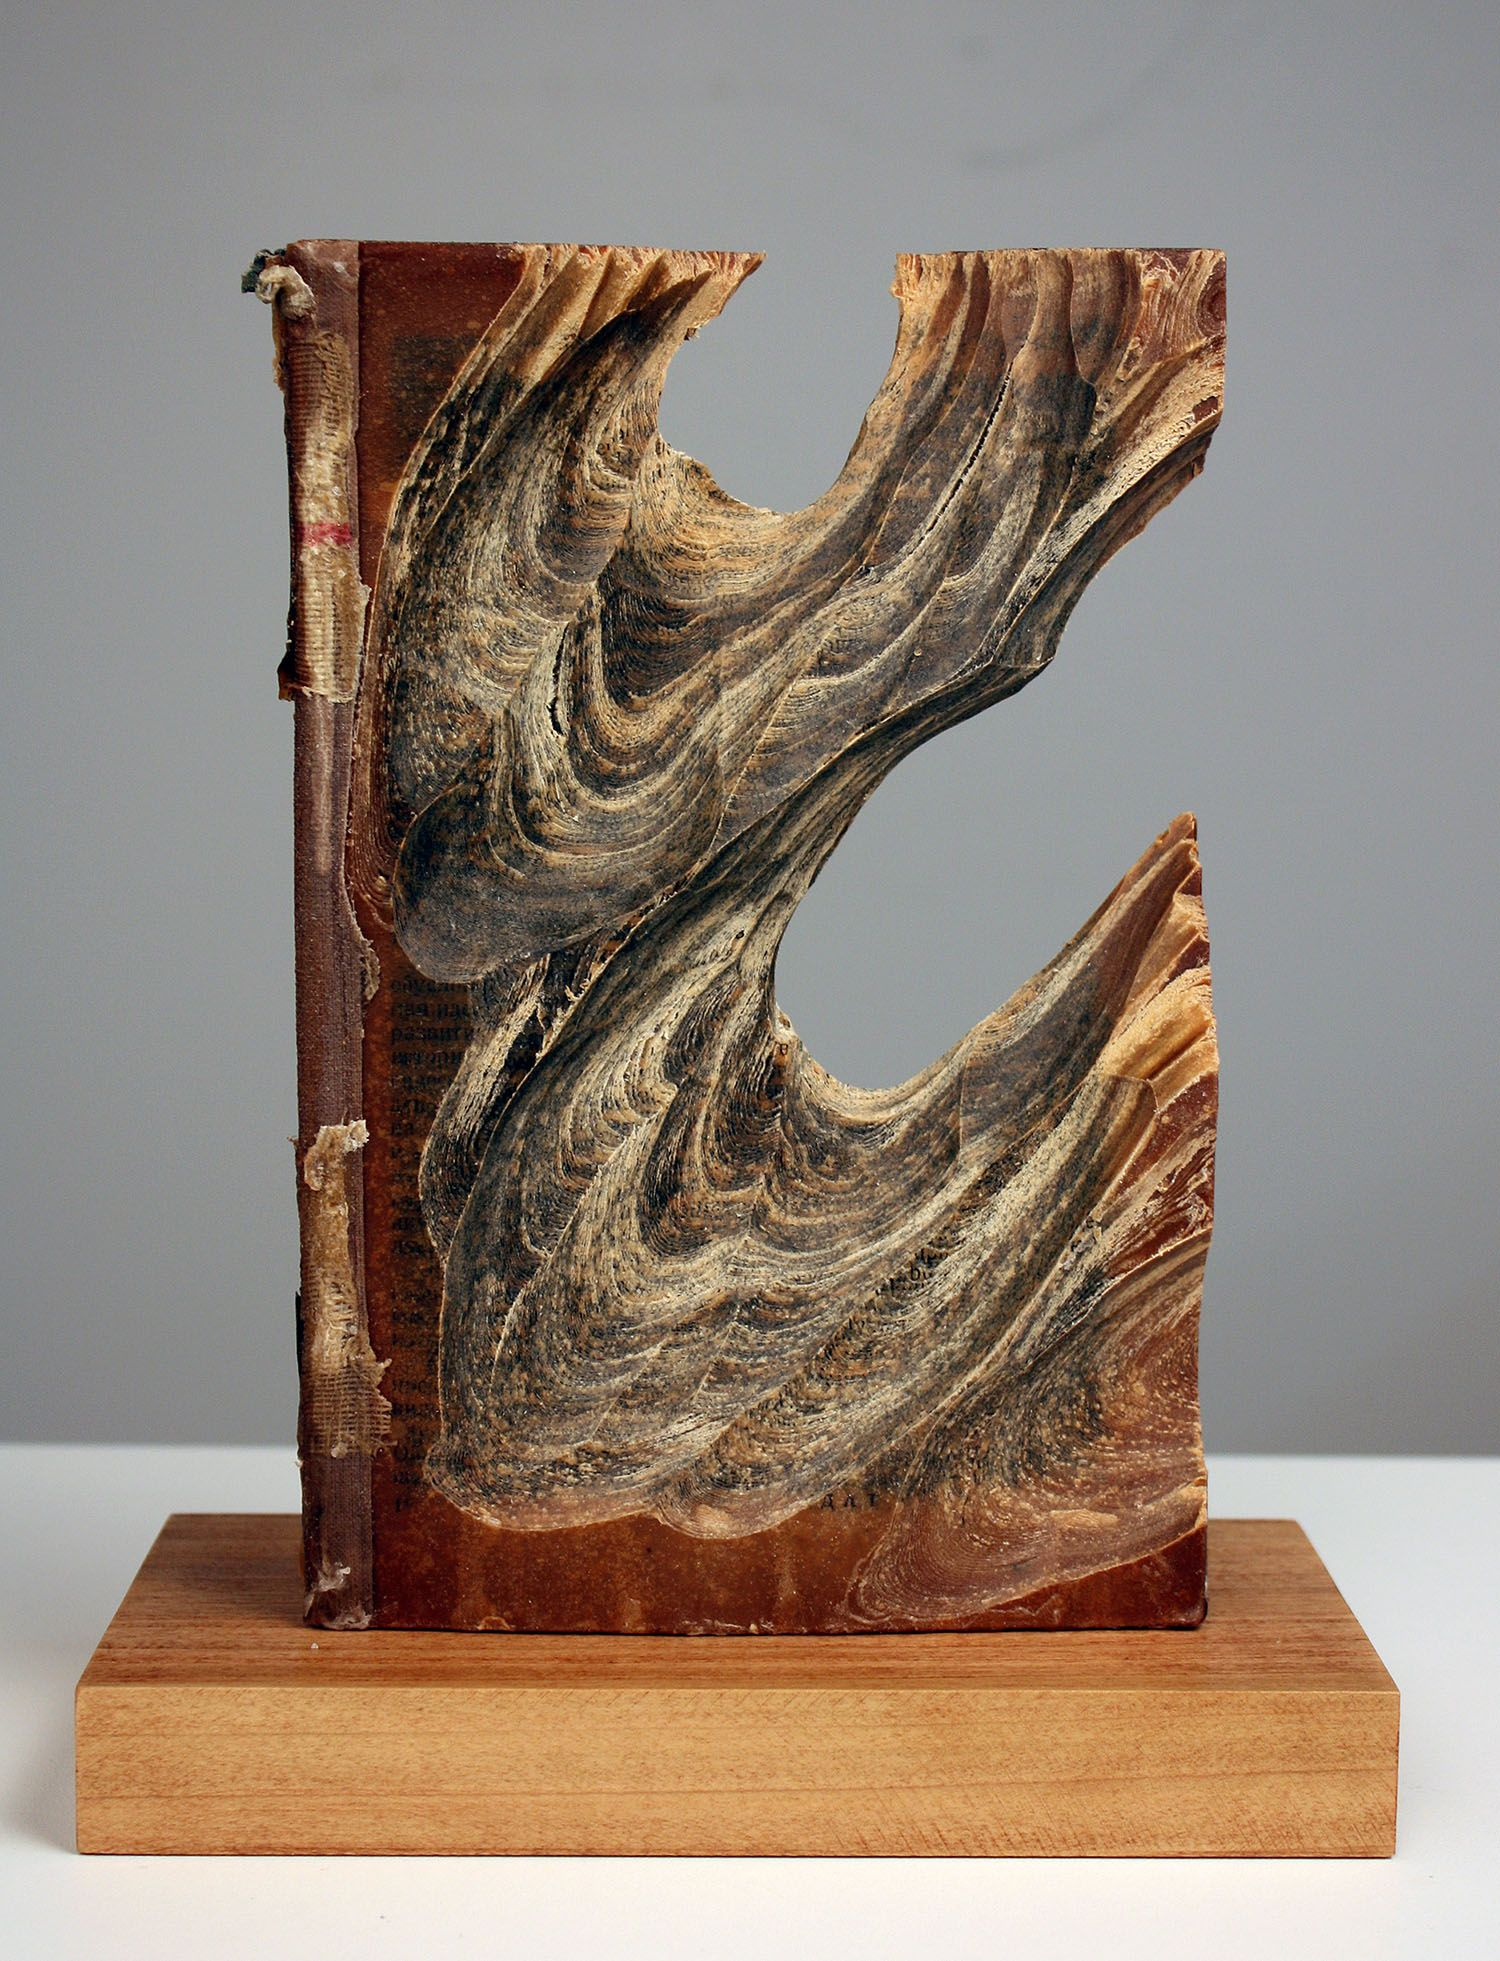 Carved book sculpture by jessica drenk